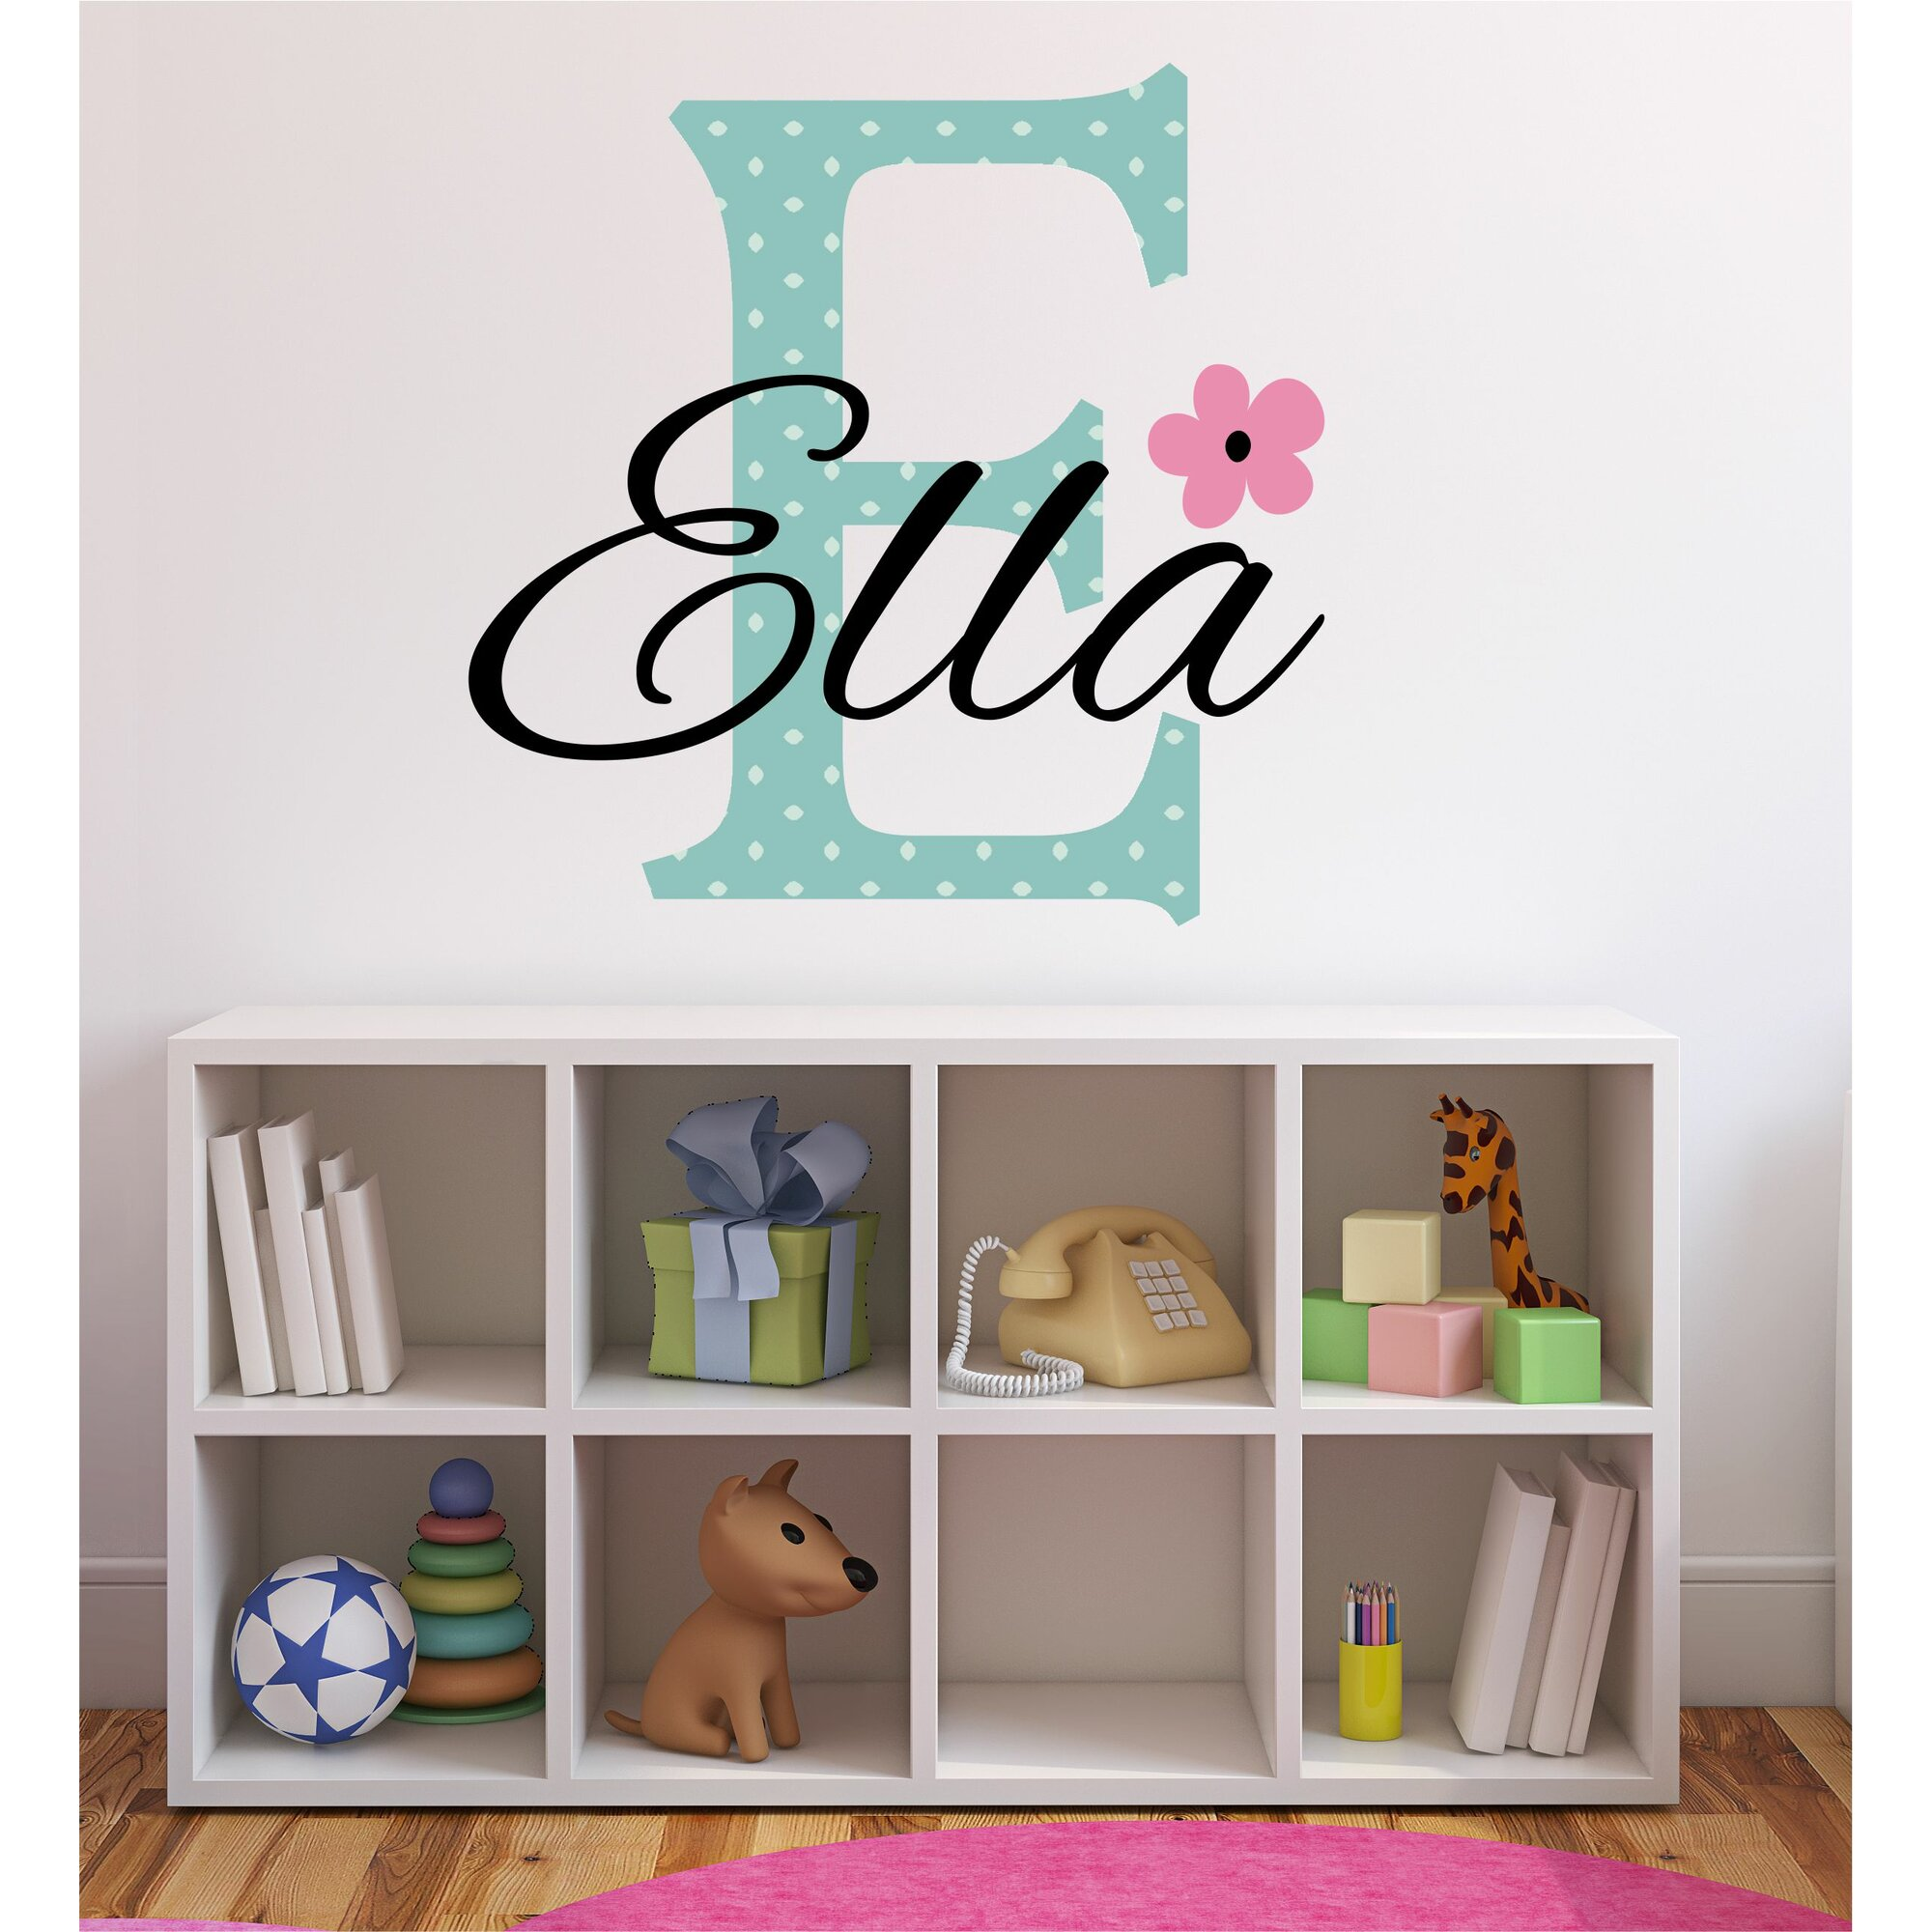 Decor Designs Decals Personalized Flower Name Wall Decal